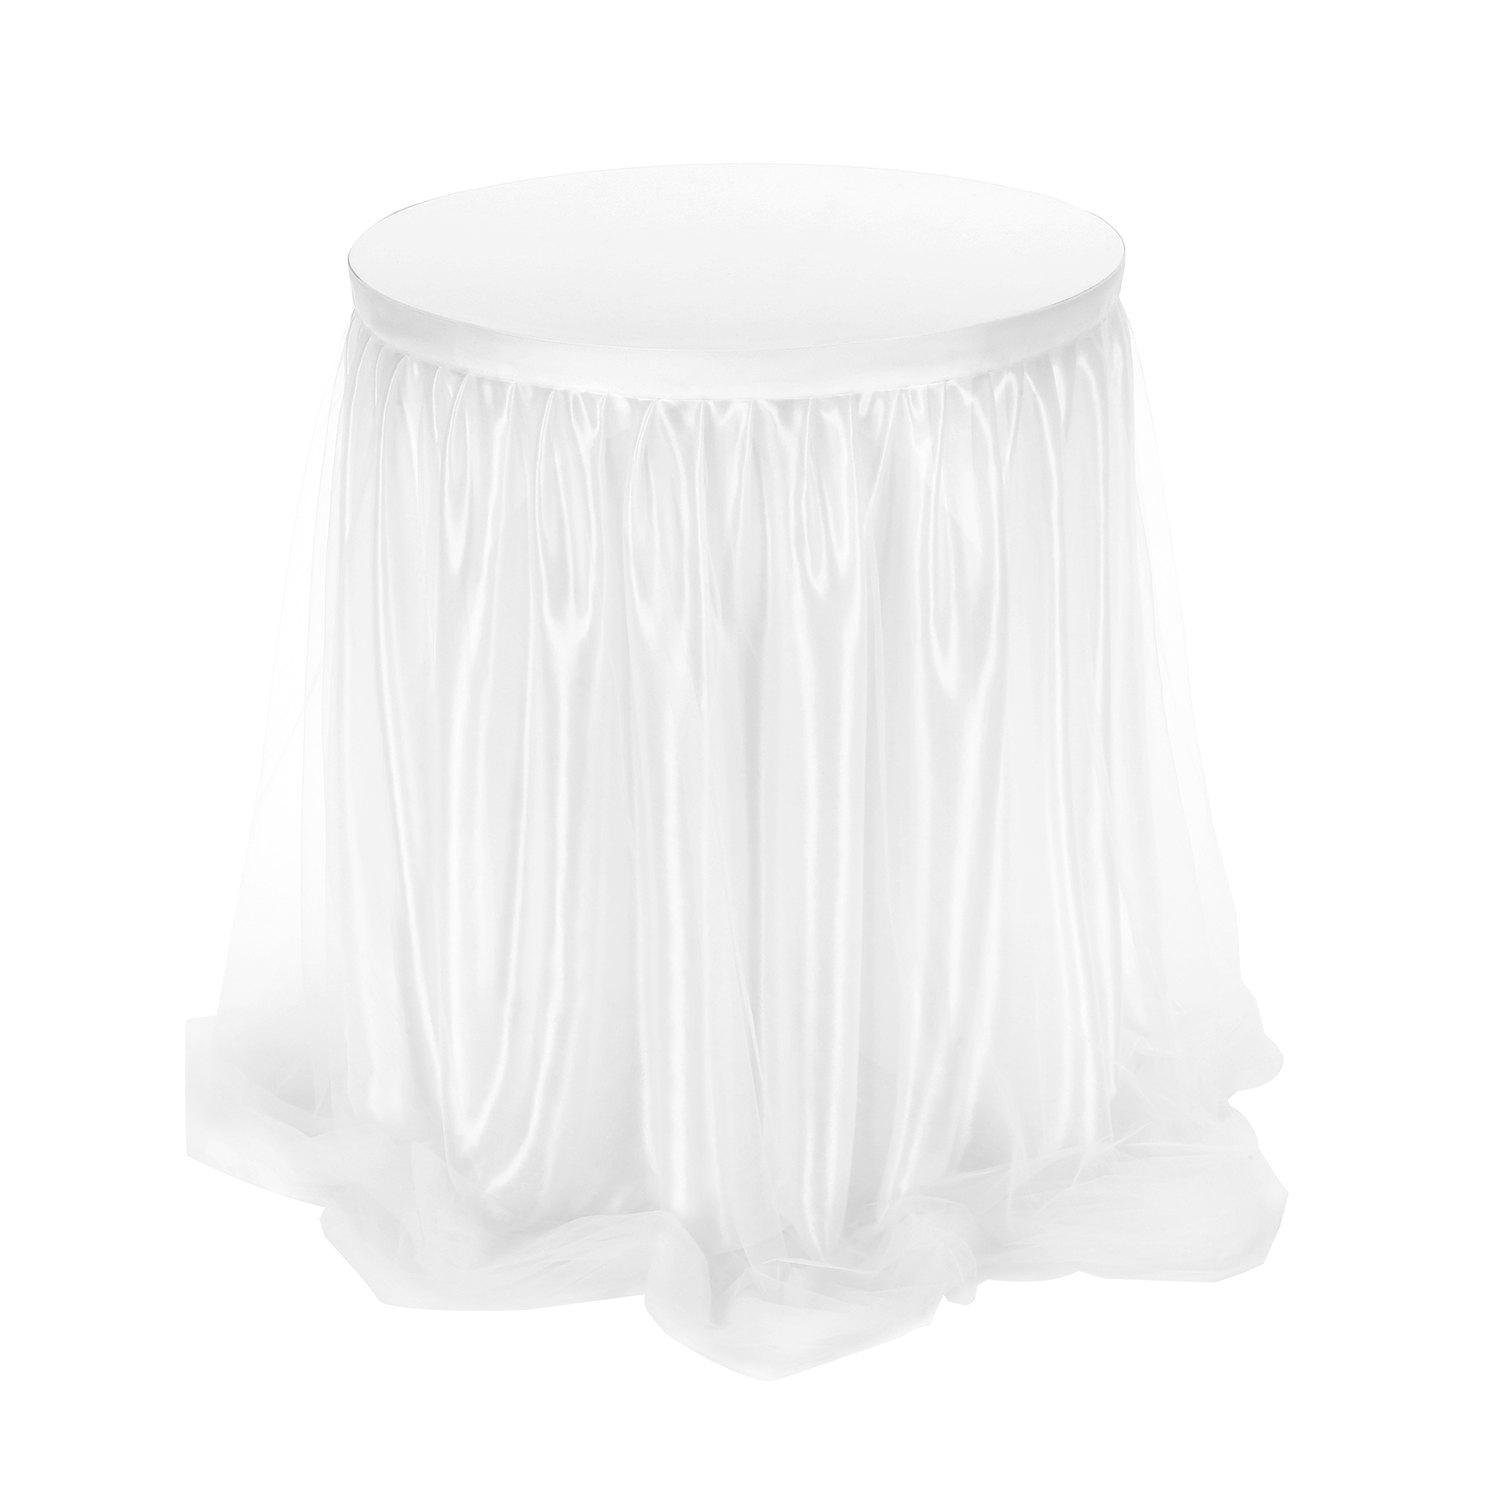 Shop Famirosa Table Skirt Long Tulle Wedding Birthday Party Decoration Polyamide